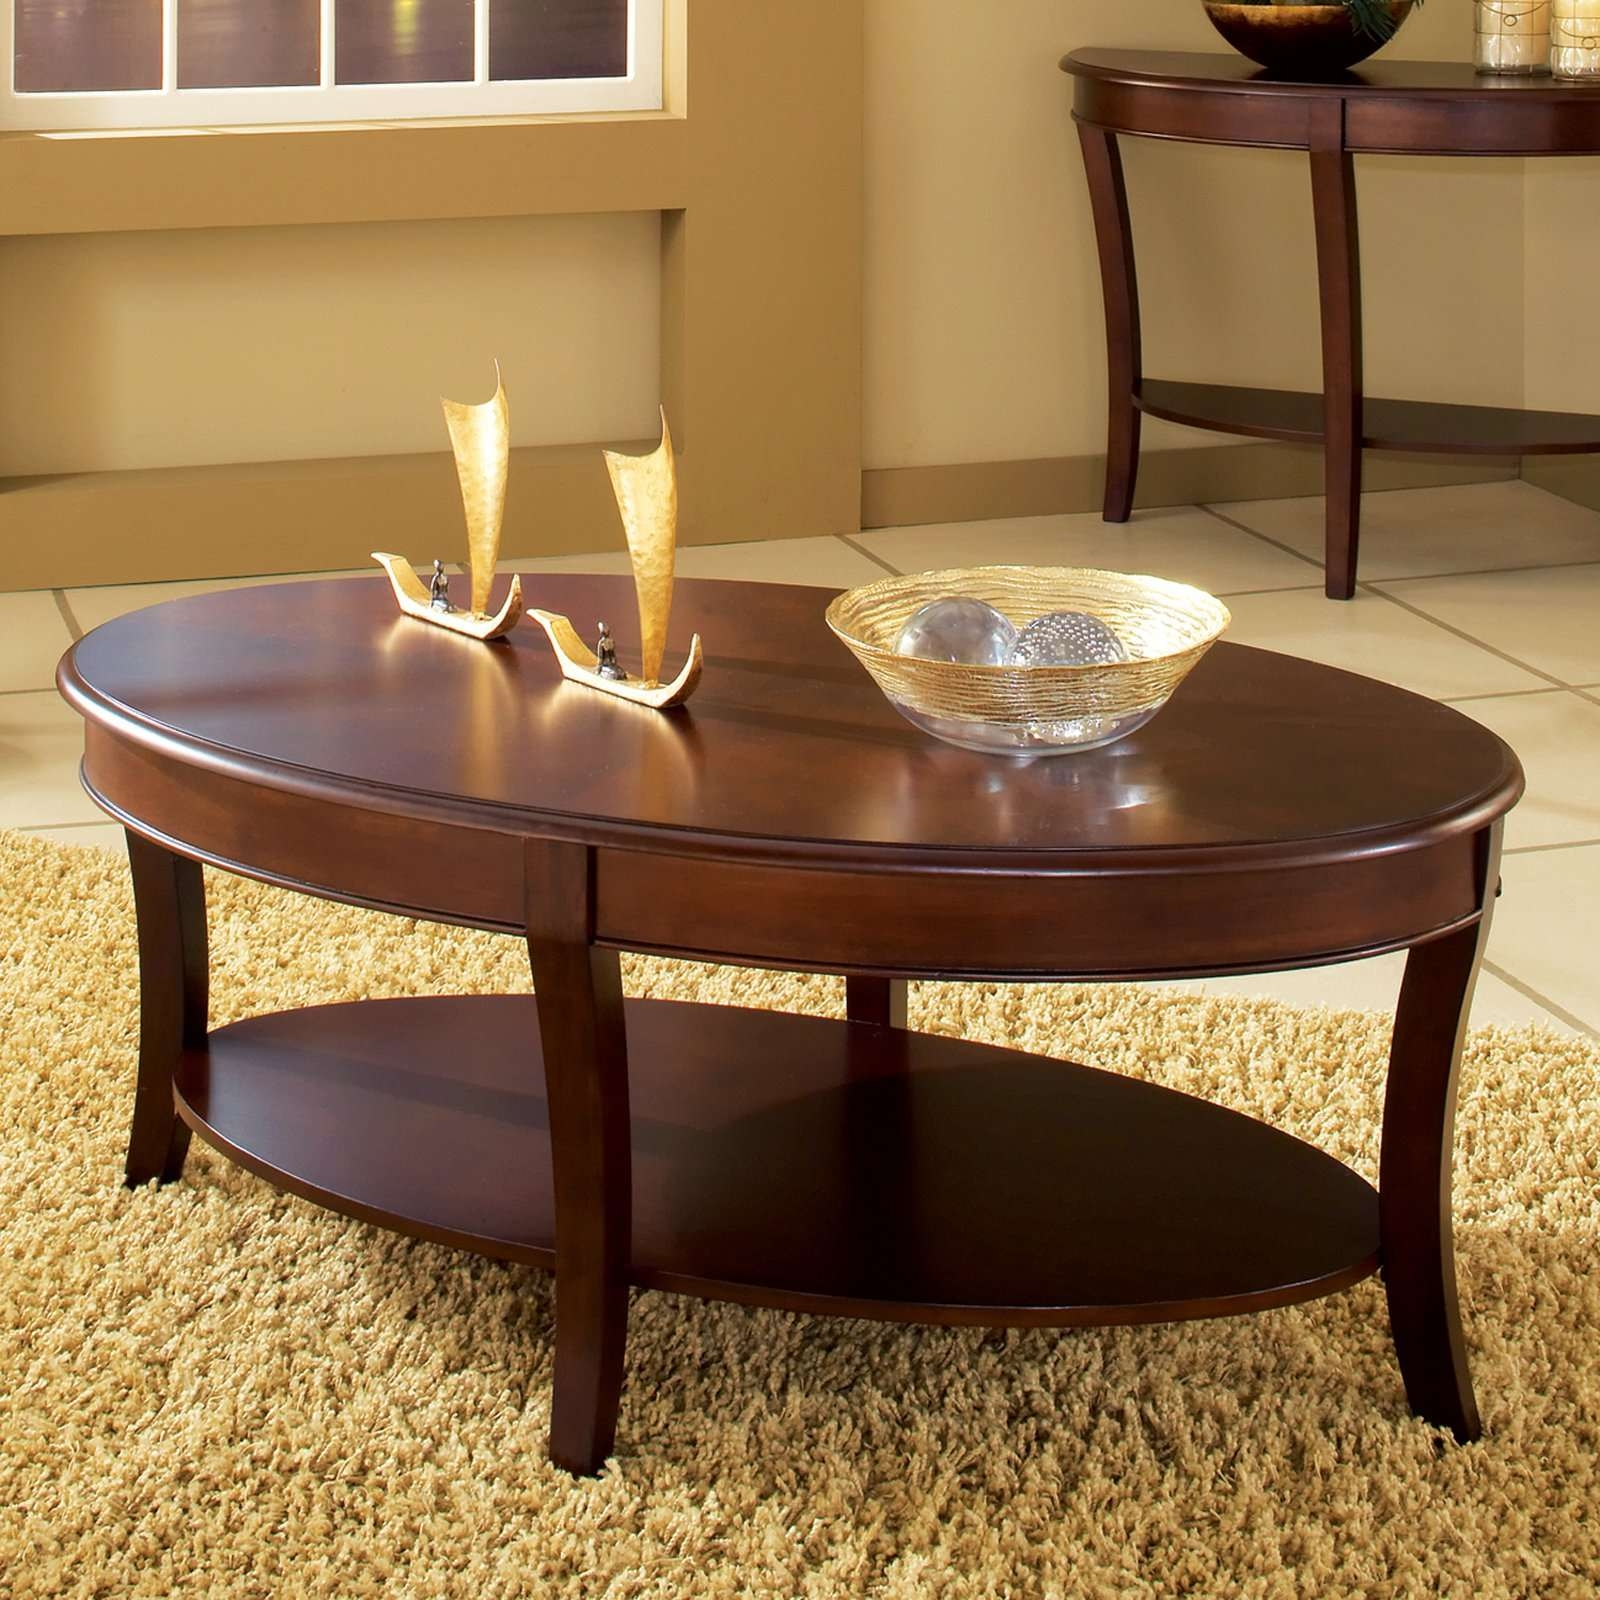 Preferred Cherry Wood Coffee Table Sets Intended For Steve Silver Troy Oval Cherry Wood Coffee Table – Walmart (View 13 of 20)